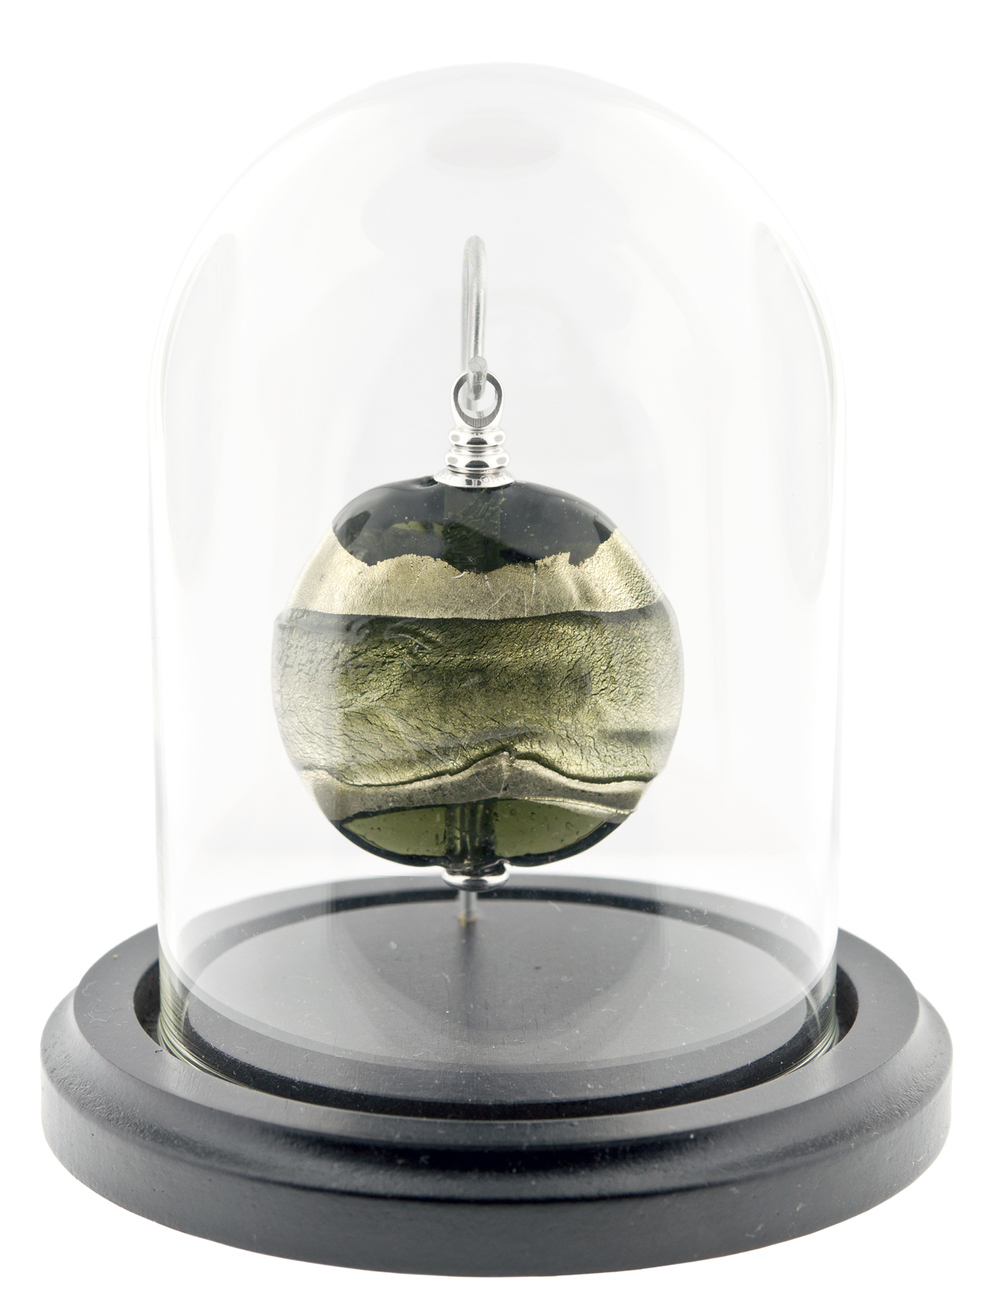 "In the Garden Keepsake Keepsake: 2"" W x 0.75"" D x 2.3"" H / 0.5 CI Base and Glass Dome (included): 4"" Dia x 5"" H $425"